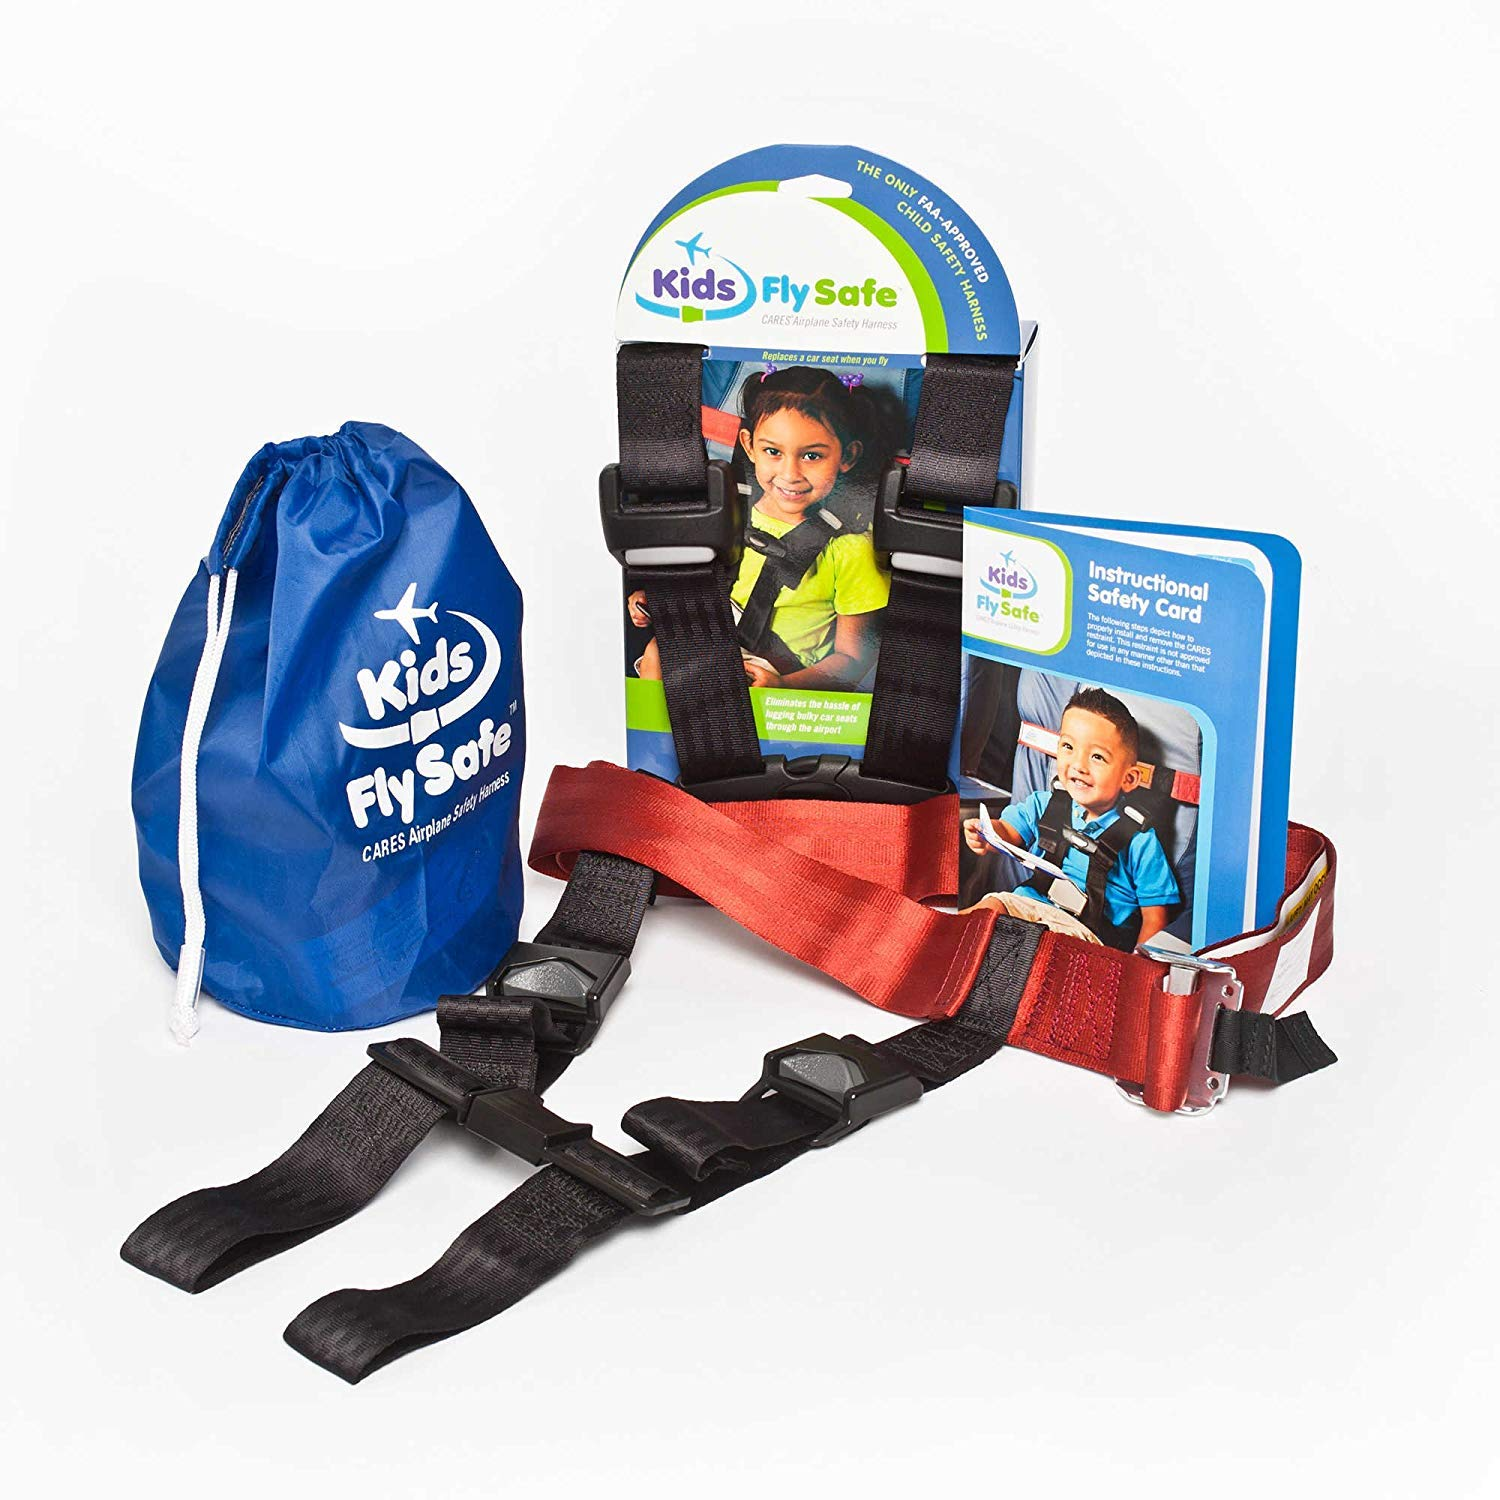 Child Airplane Travel Harness – Cares Safety Restraint System – The Only FAA Approved Child Flying Safety Device